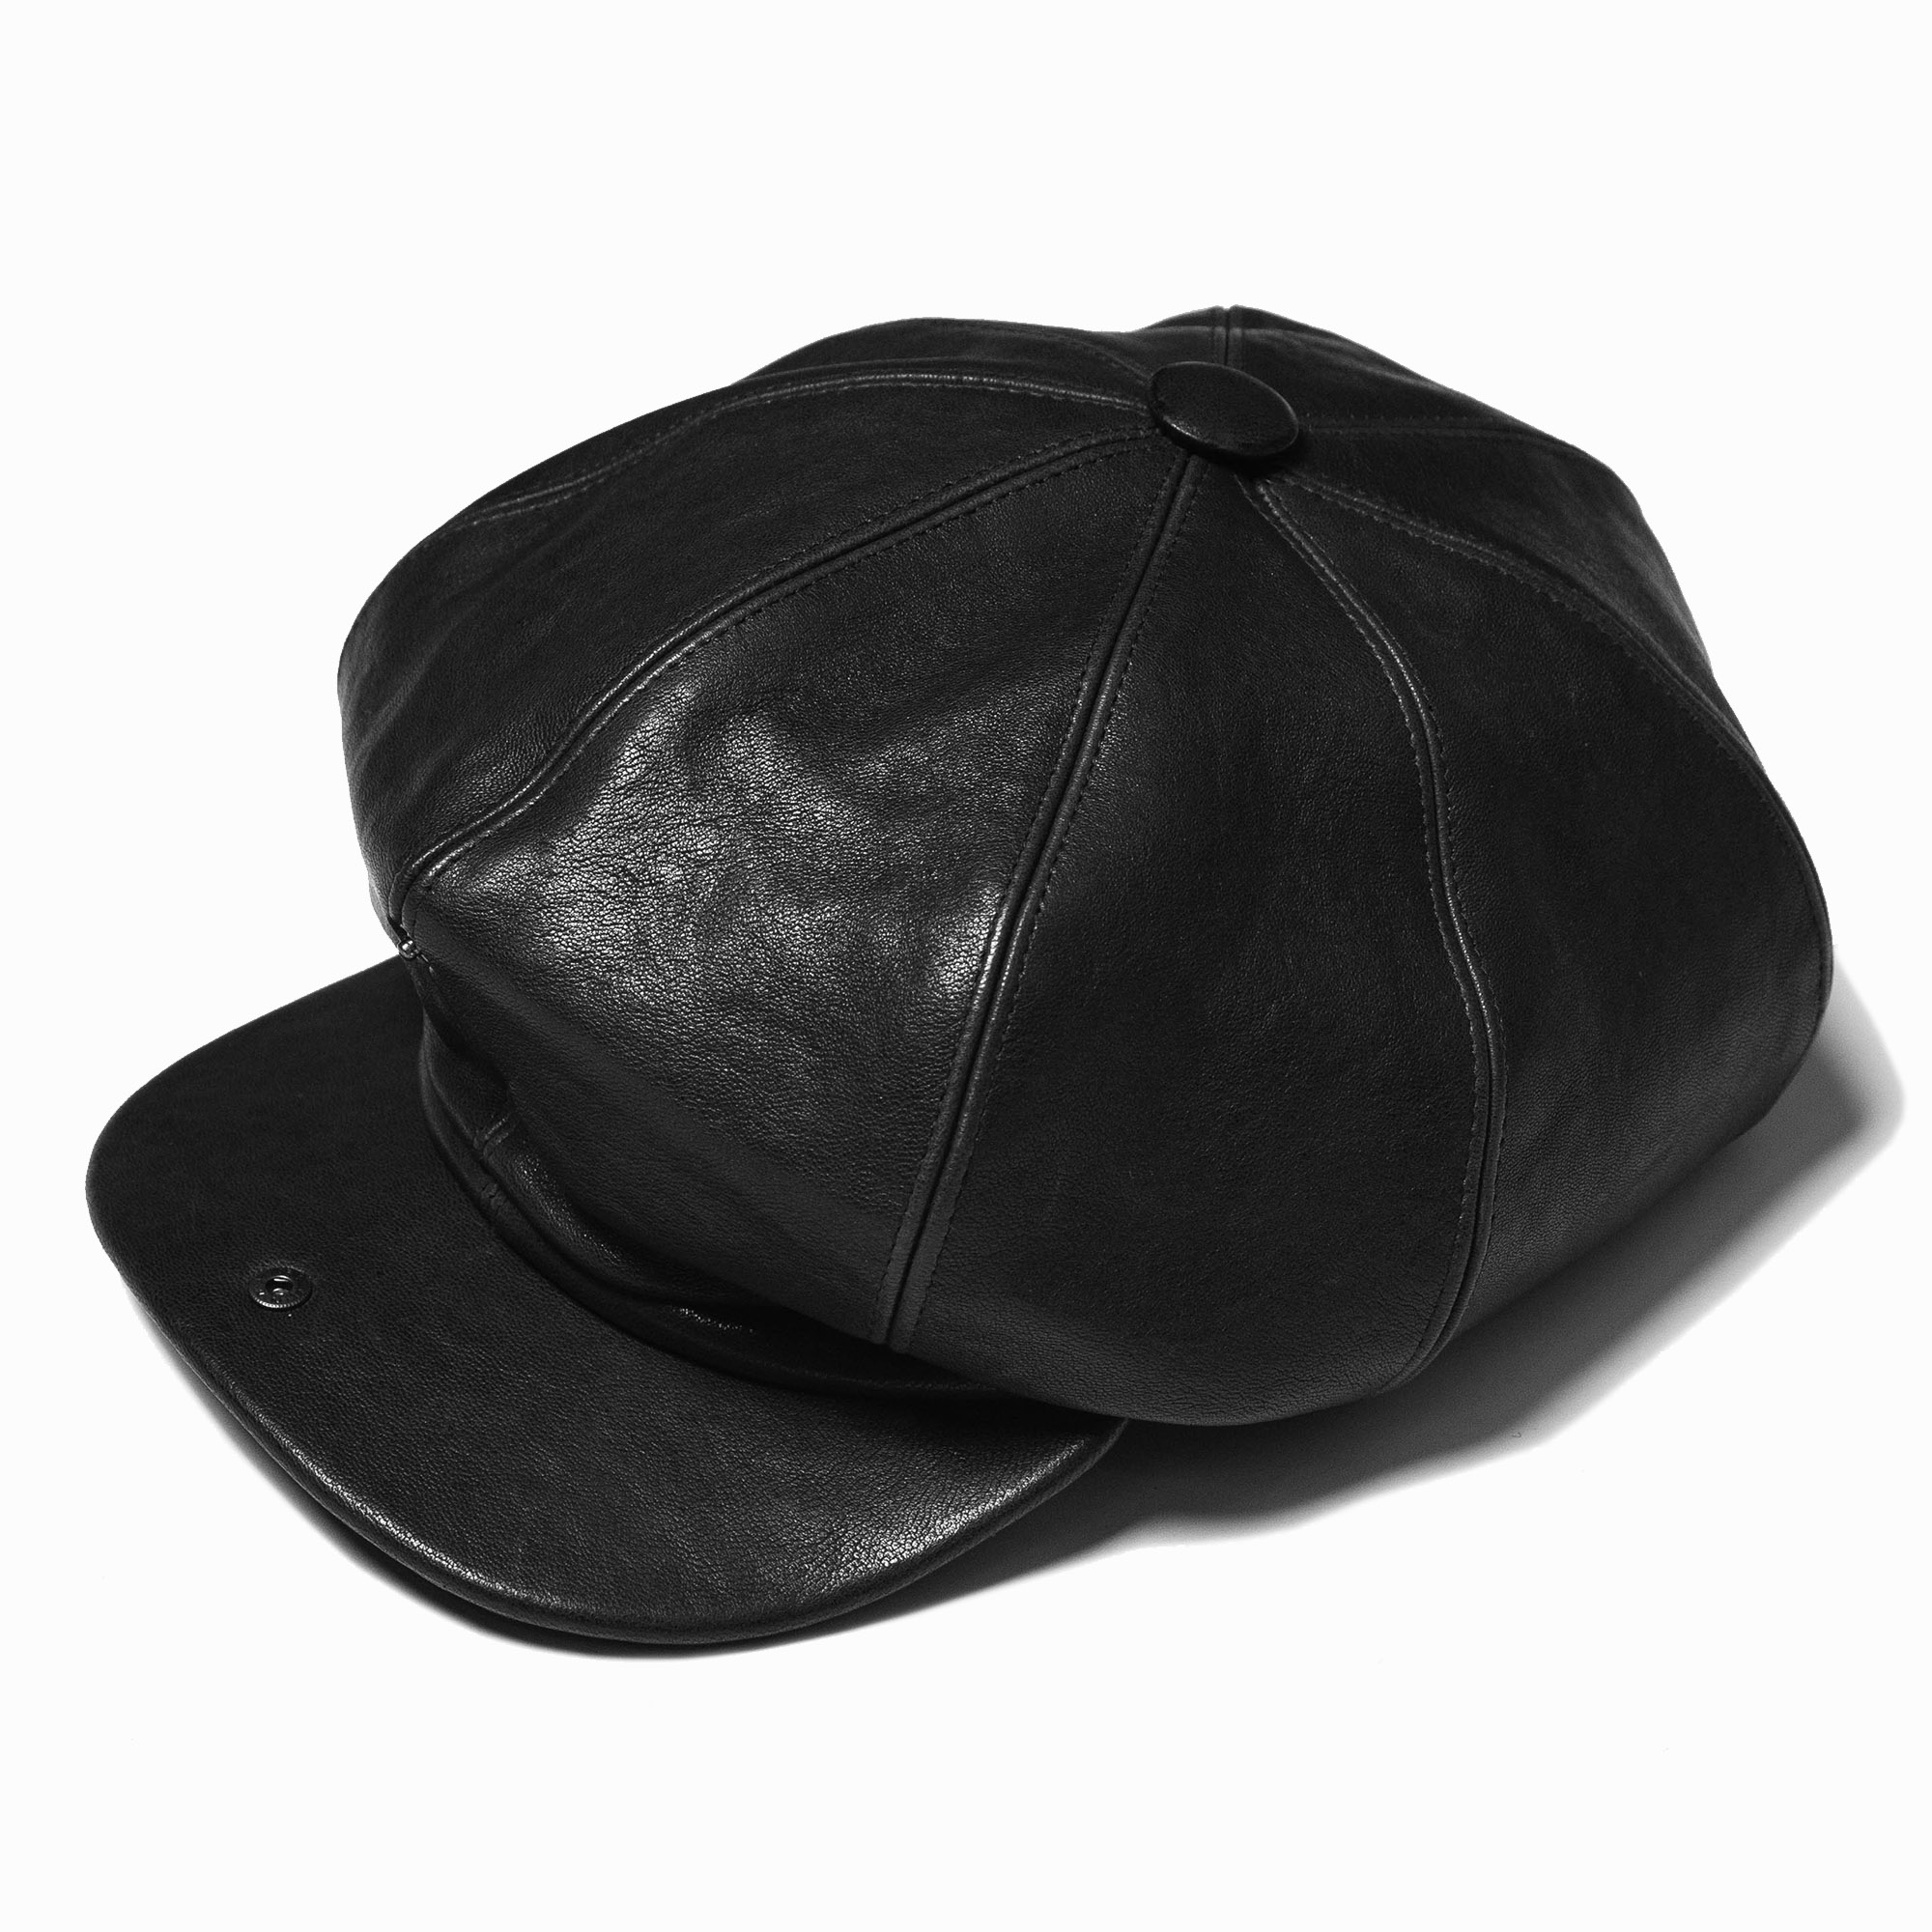 shangri-la-heritage-outlaw-black-lambskin-8-panel-riders-cap-still-life-open